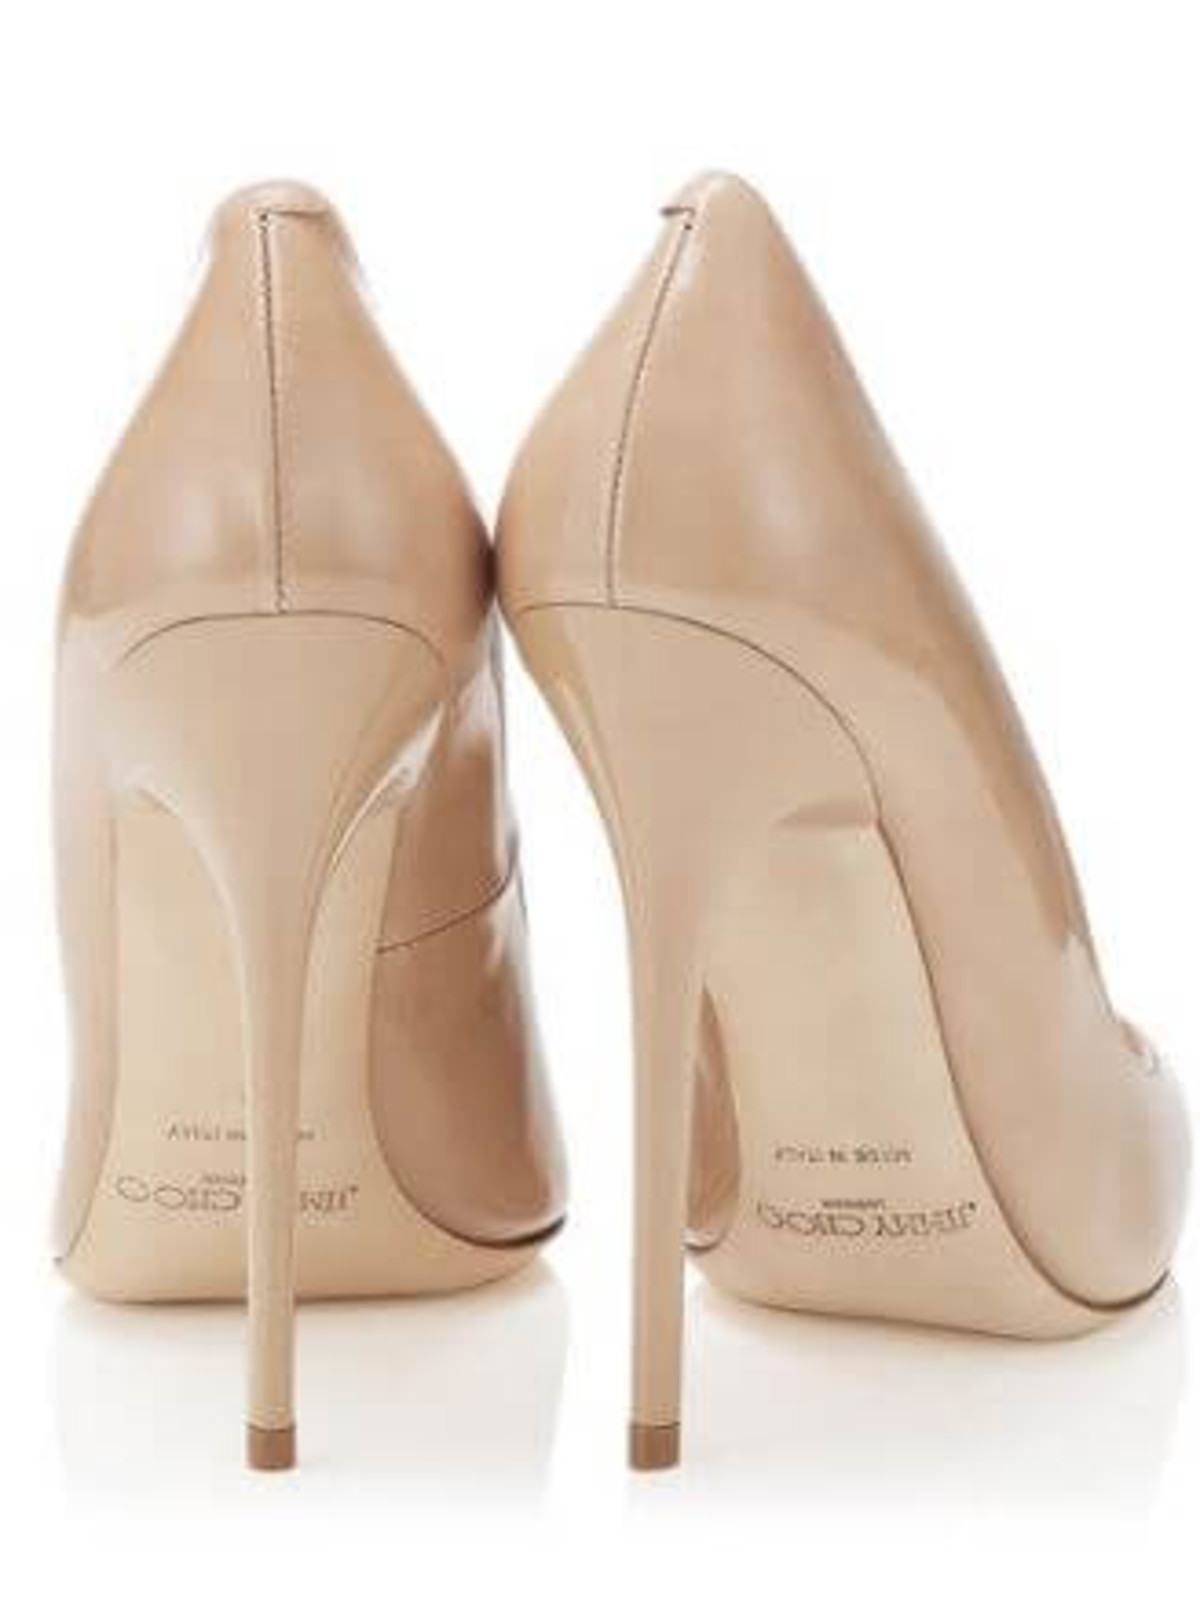 Jimmy Choo Nude Patent Stiletto Pump